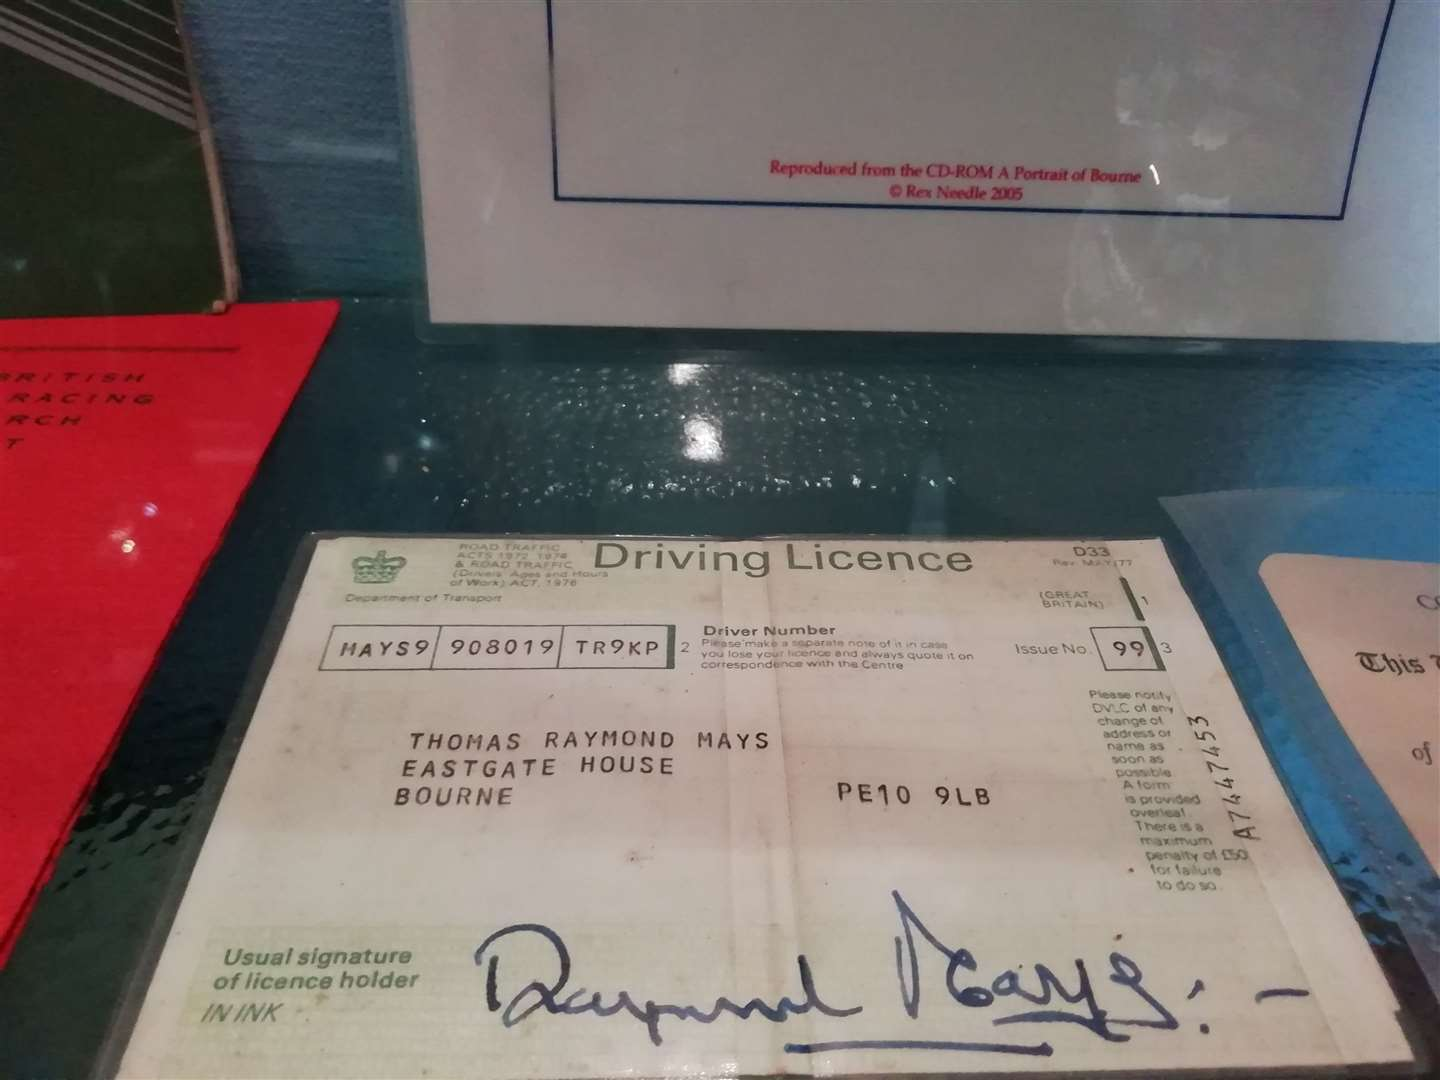 Raymond Mays' driving licence